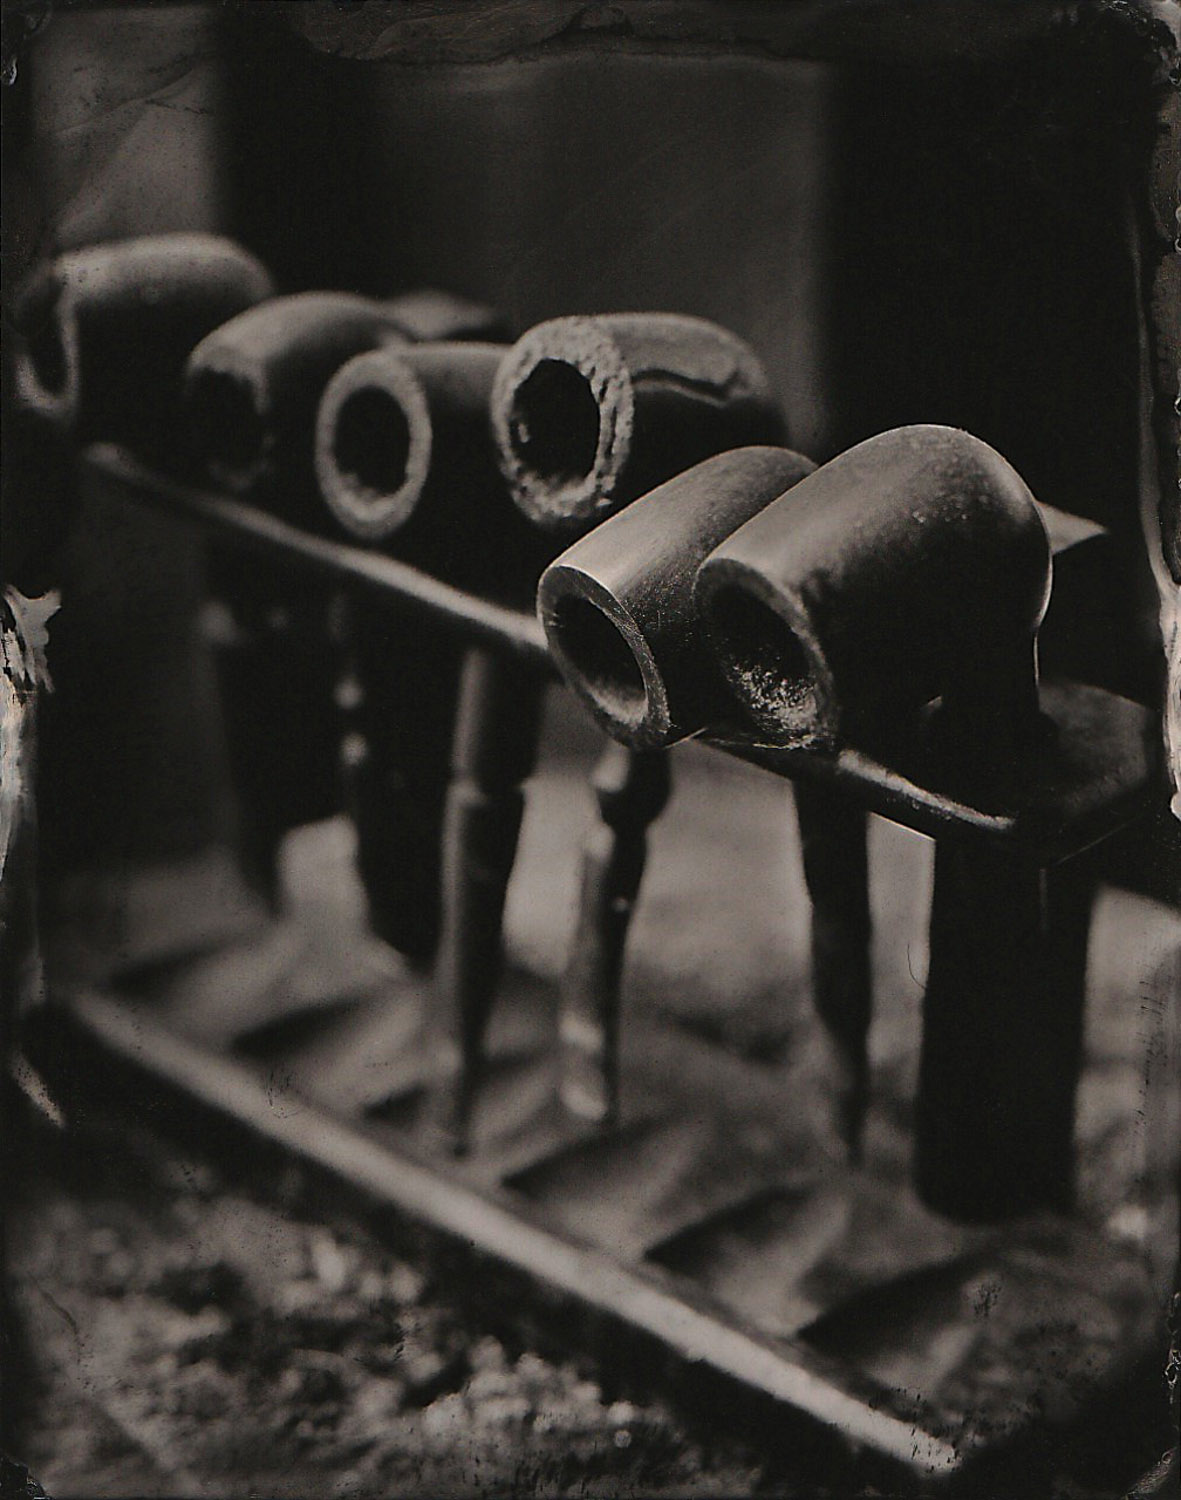 Old Pipes - By: Dylan Slater